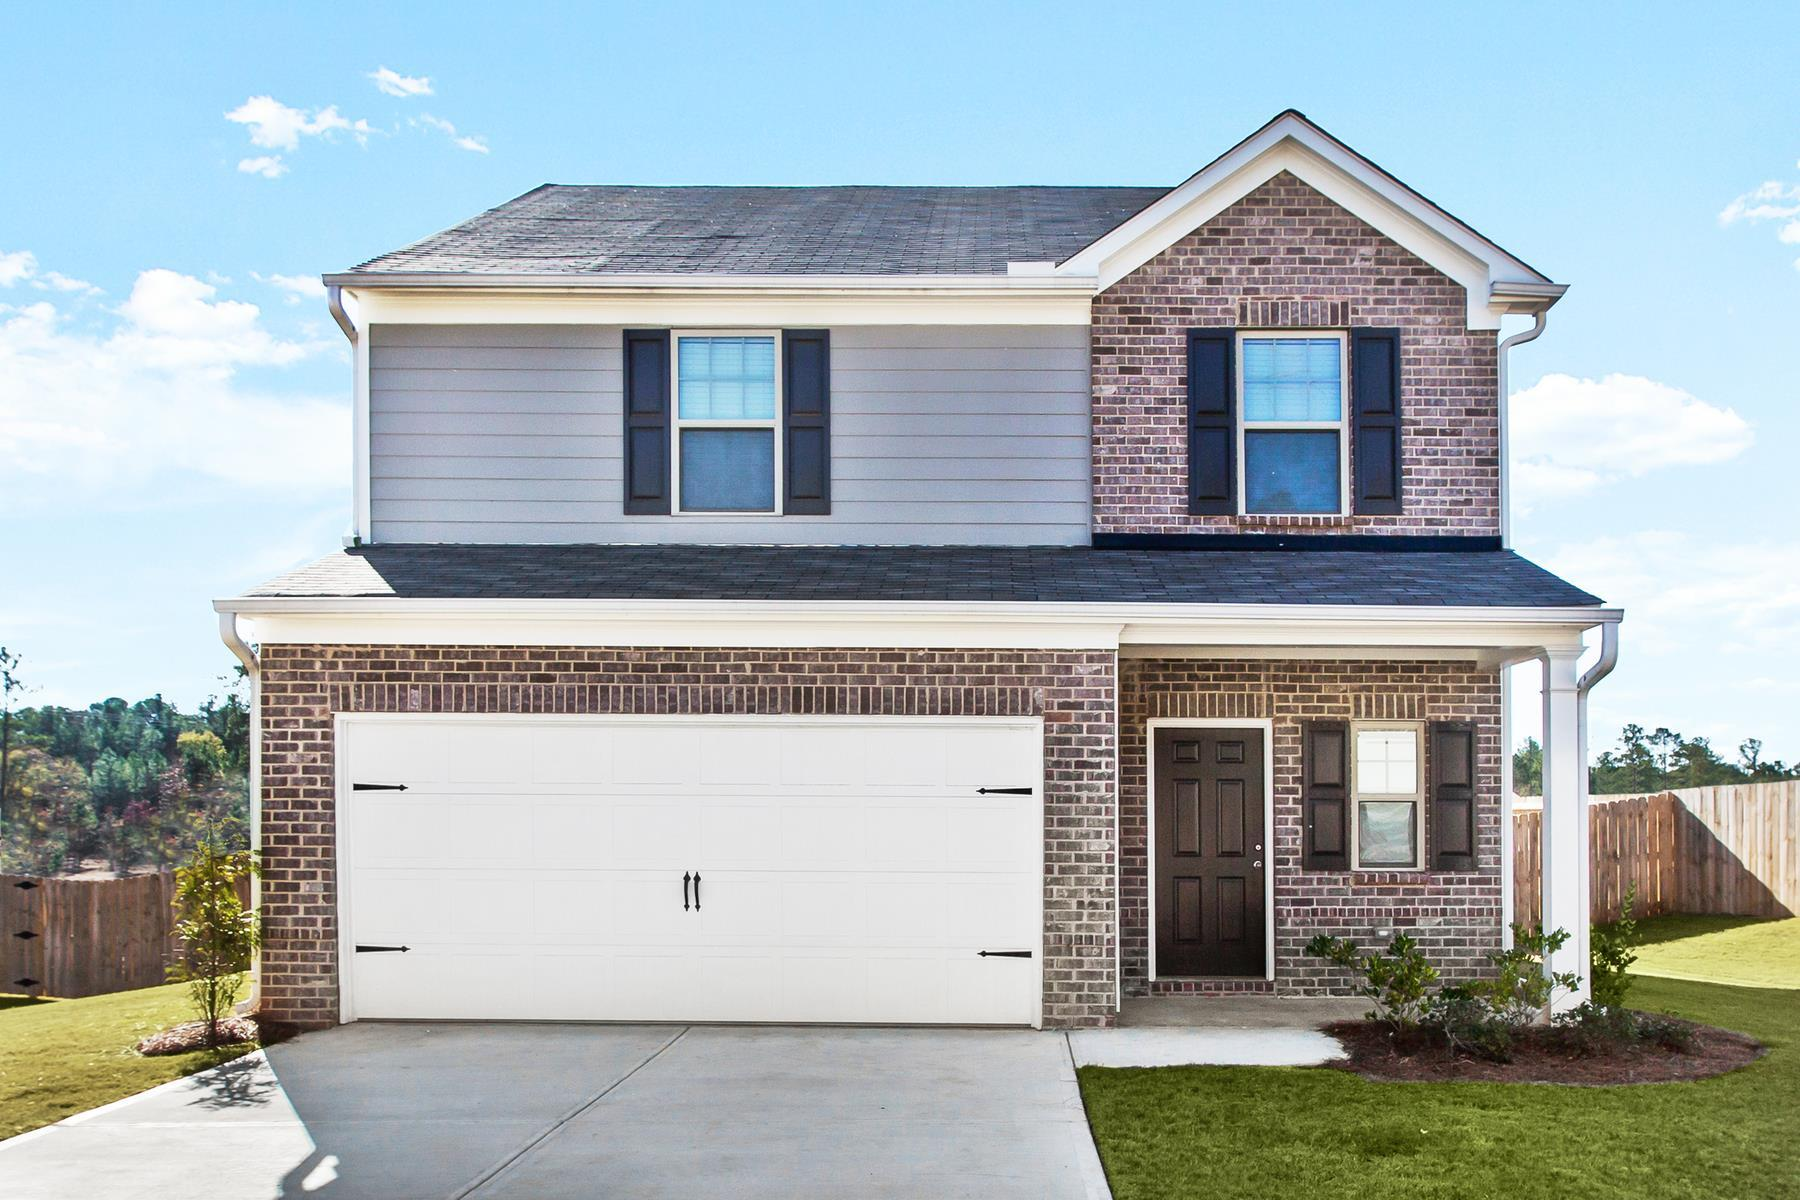 The Harding at Creekside Manor:Spacious 4-bedroom home with great curb appeal!